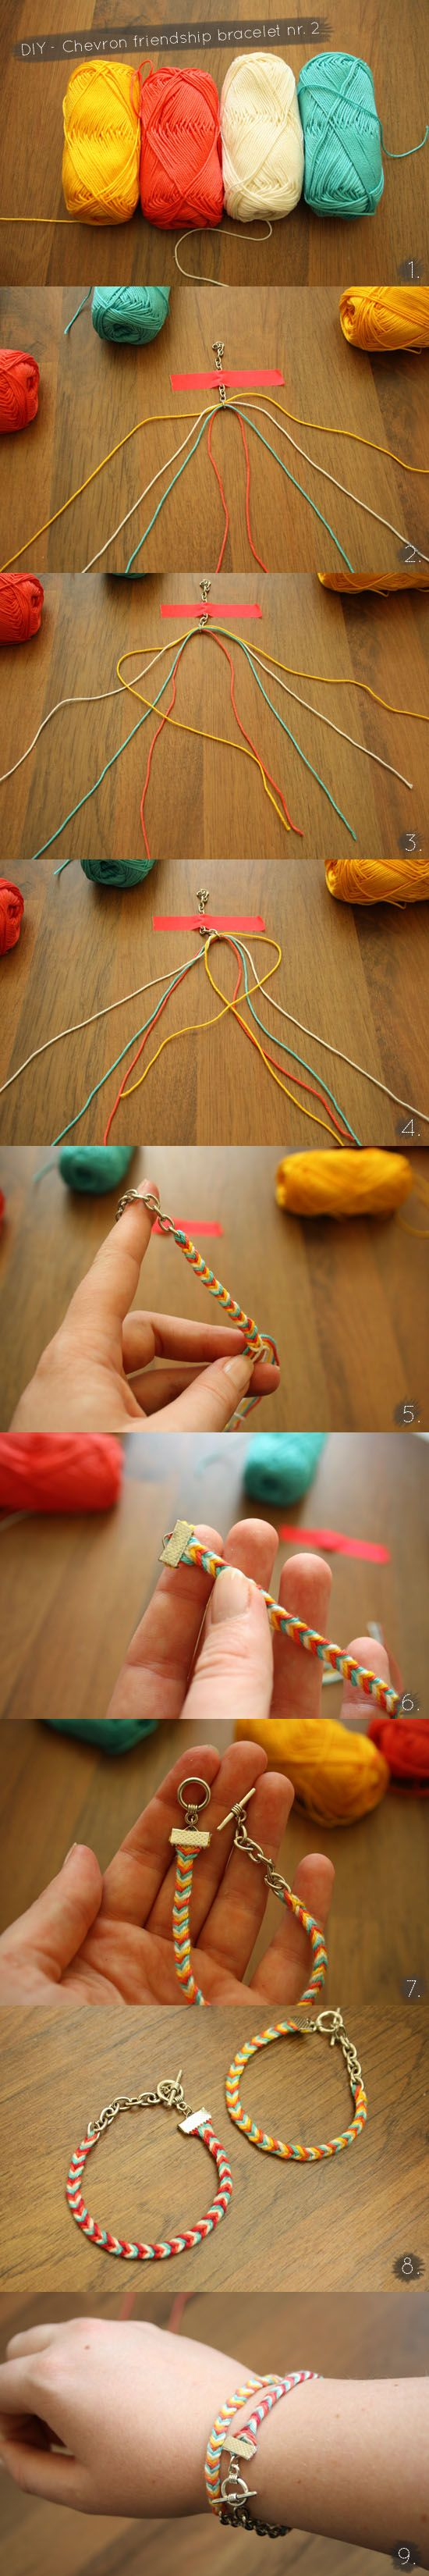 chevron friendship bracelet nr 2 tutorial